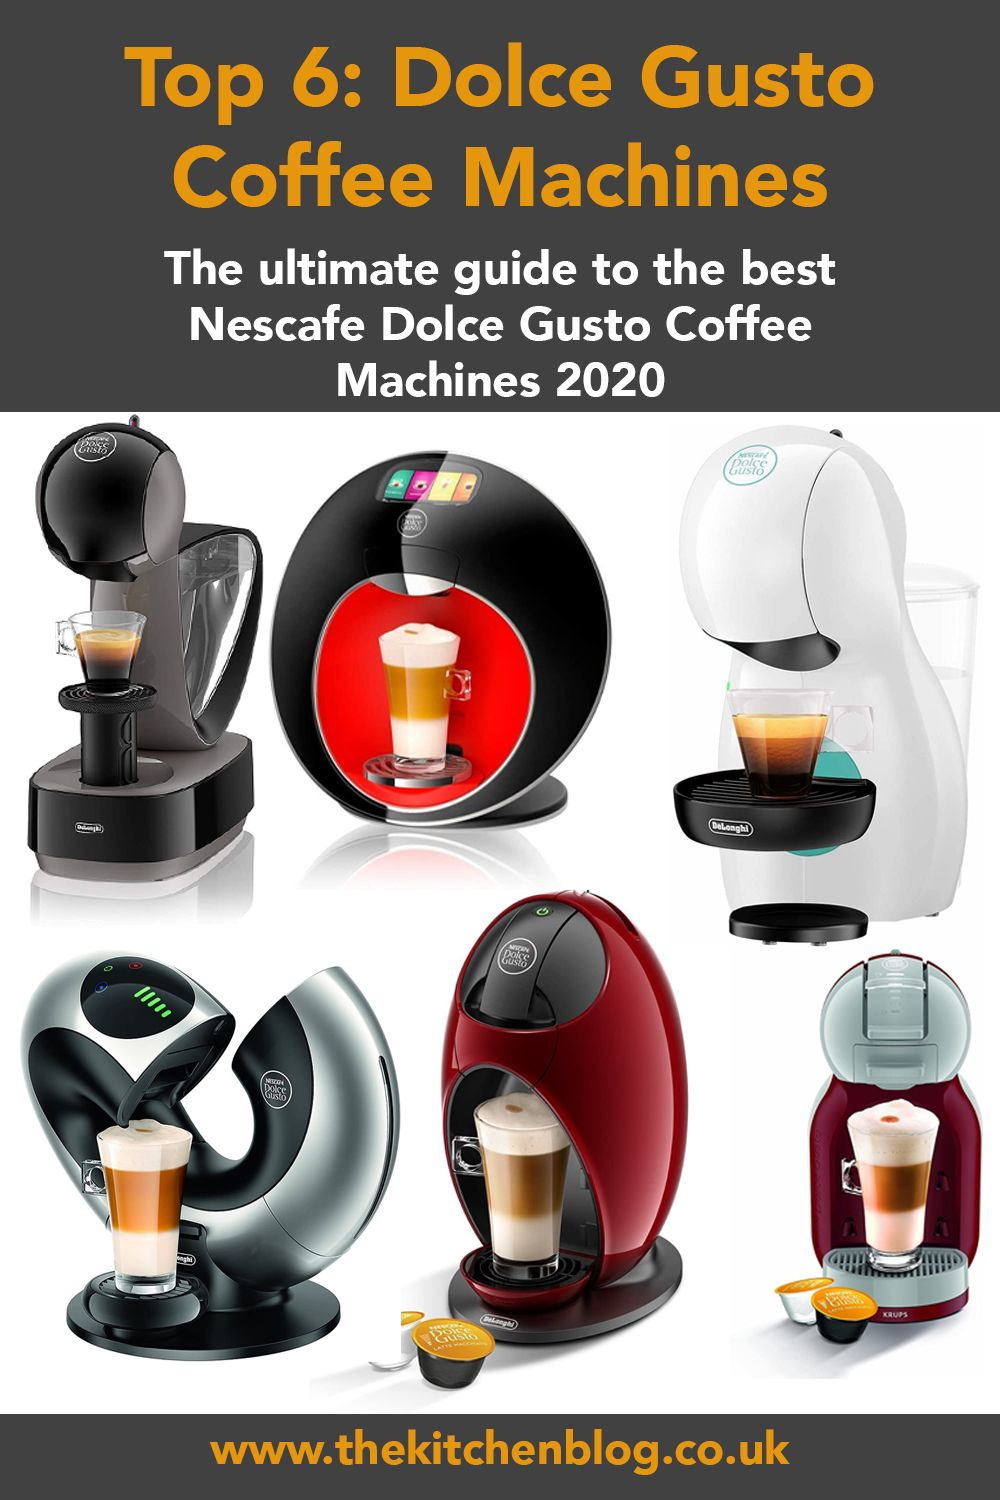 Top 6 Dolce Gusto Coffee Machines 2020 in 2020 Dolce